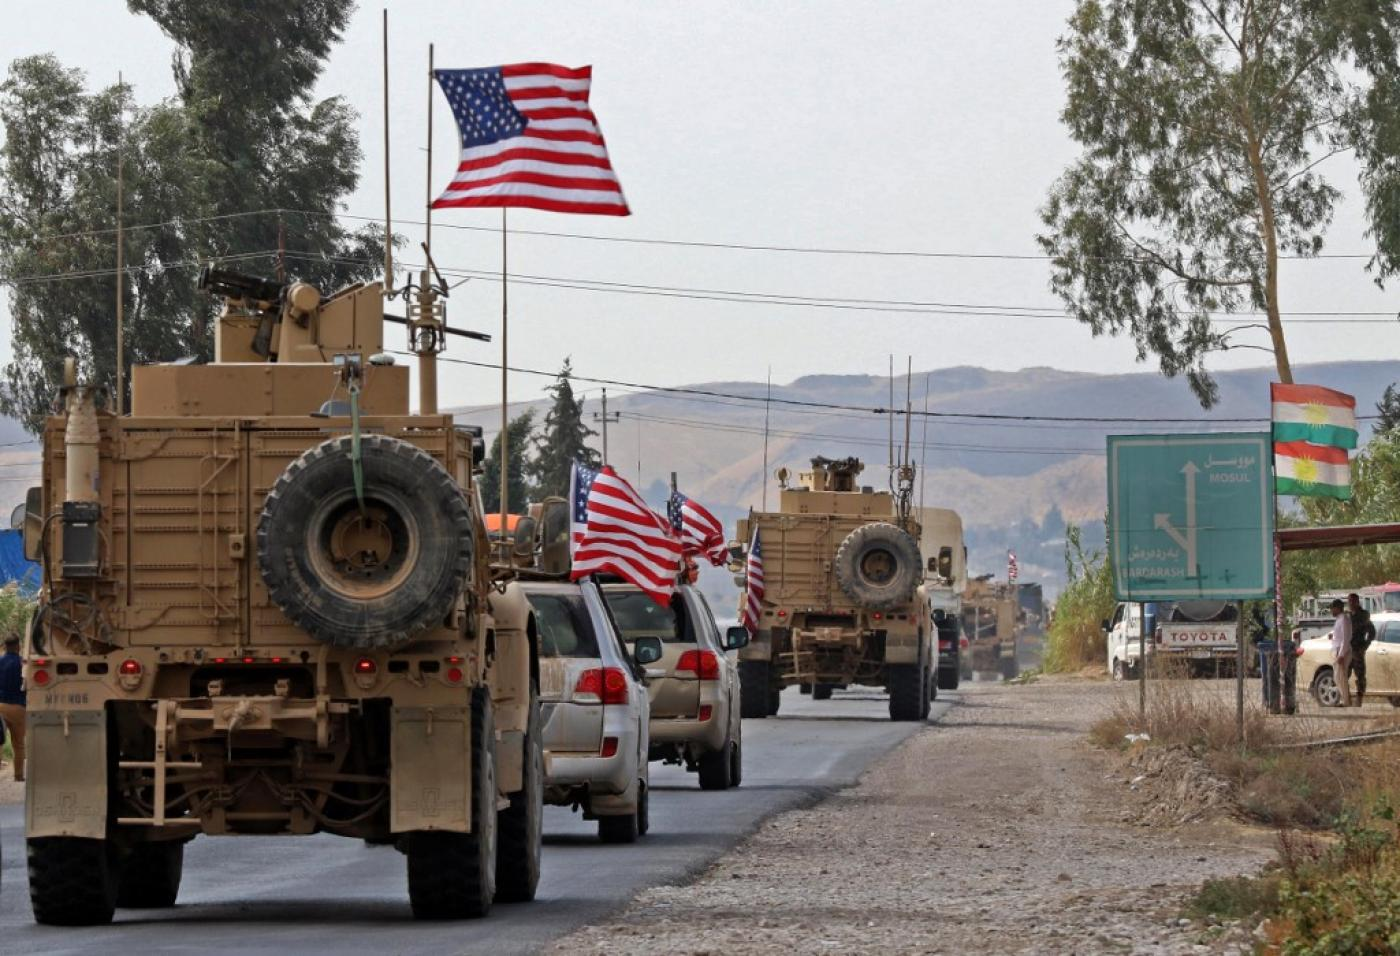 A convoy of US military vehicles arrives in Iraq